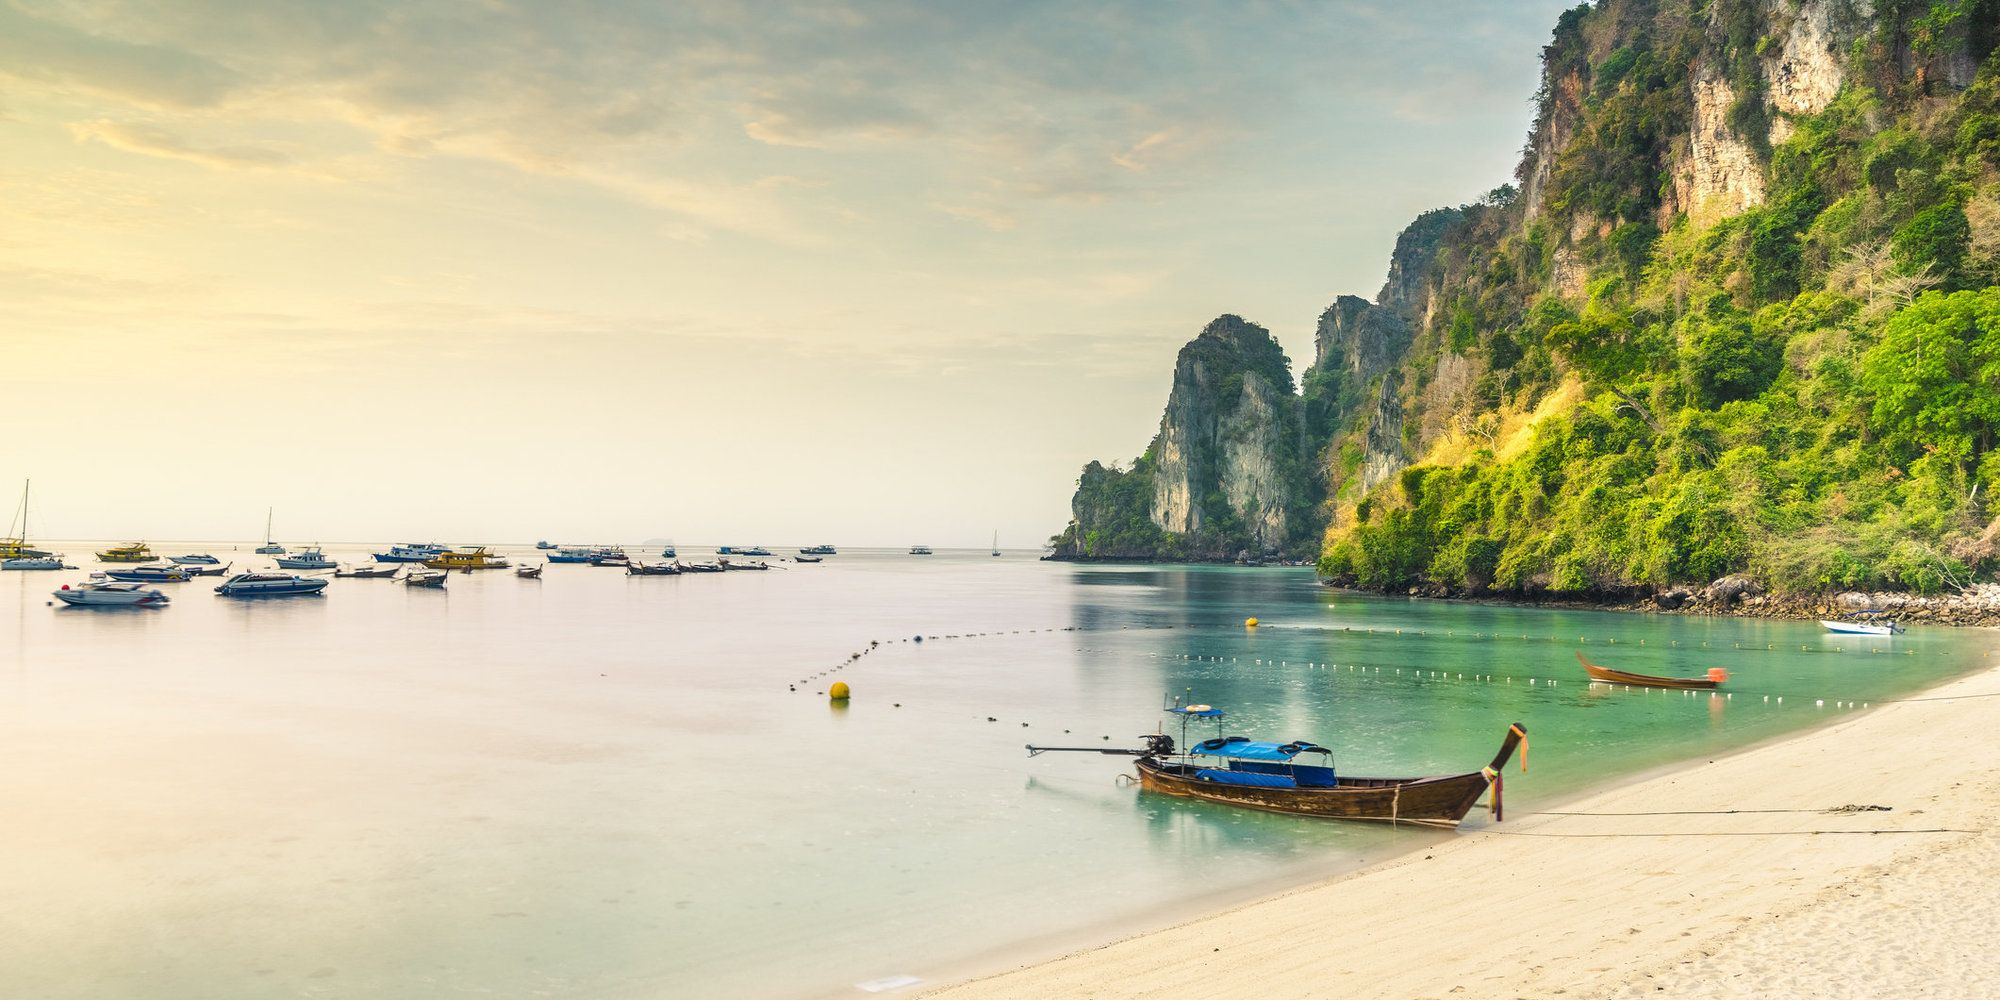 Traveling To Southeast Asia? Here's What You Need To Know About Zika Virus #World #iNewsPhoto